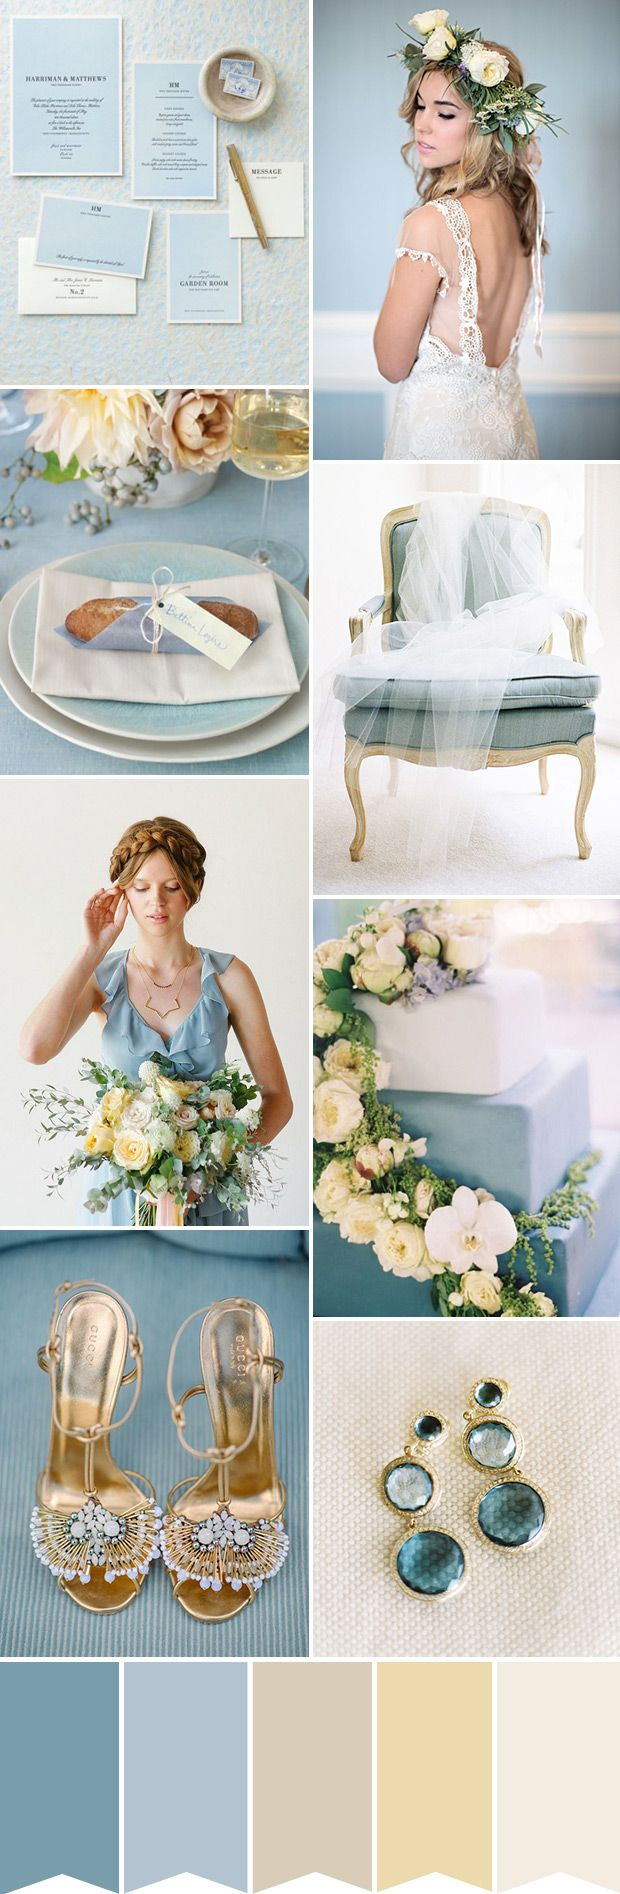 Find out how to create this romantic colour palette of blue and cream for your wedding - http://onefabday.com/powder-blue-and-cream-wedding-color-palette/